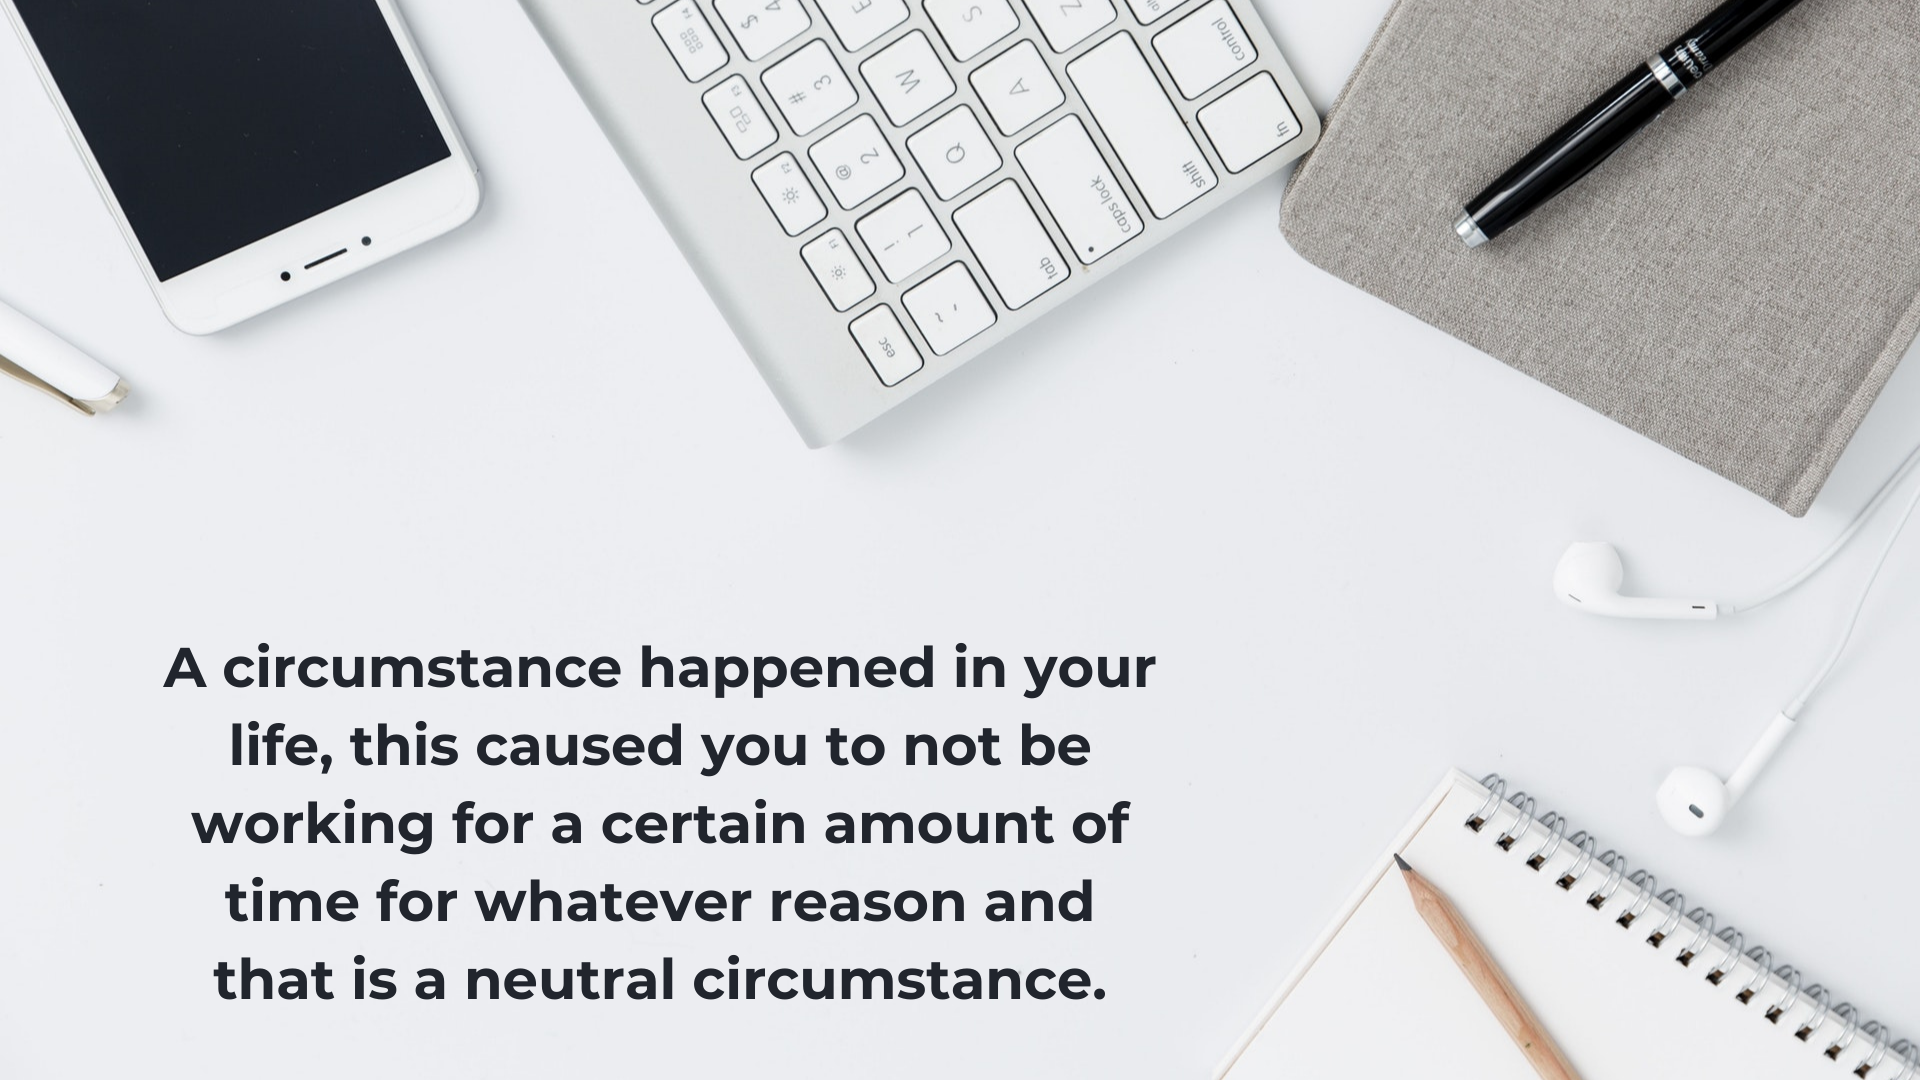 A circumstance happened in your life, this caused you to not be working for a certain amount of time for whatever reason and that is a neutral circumstance, okay?